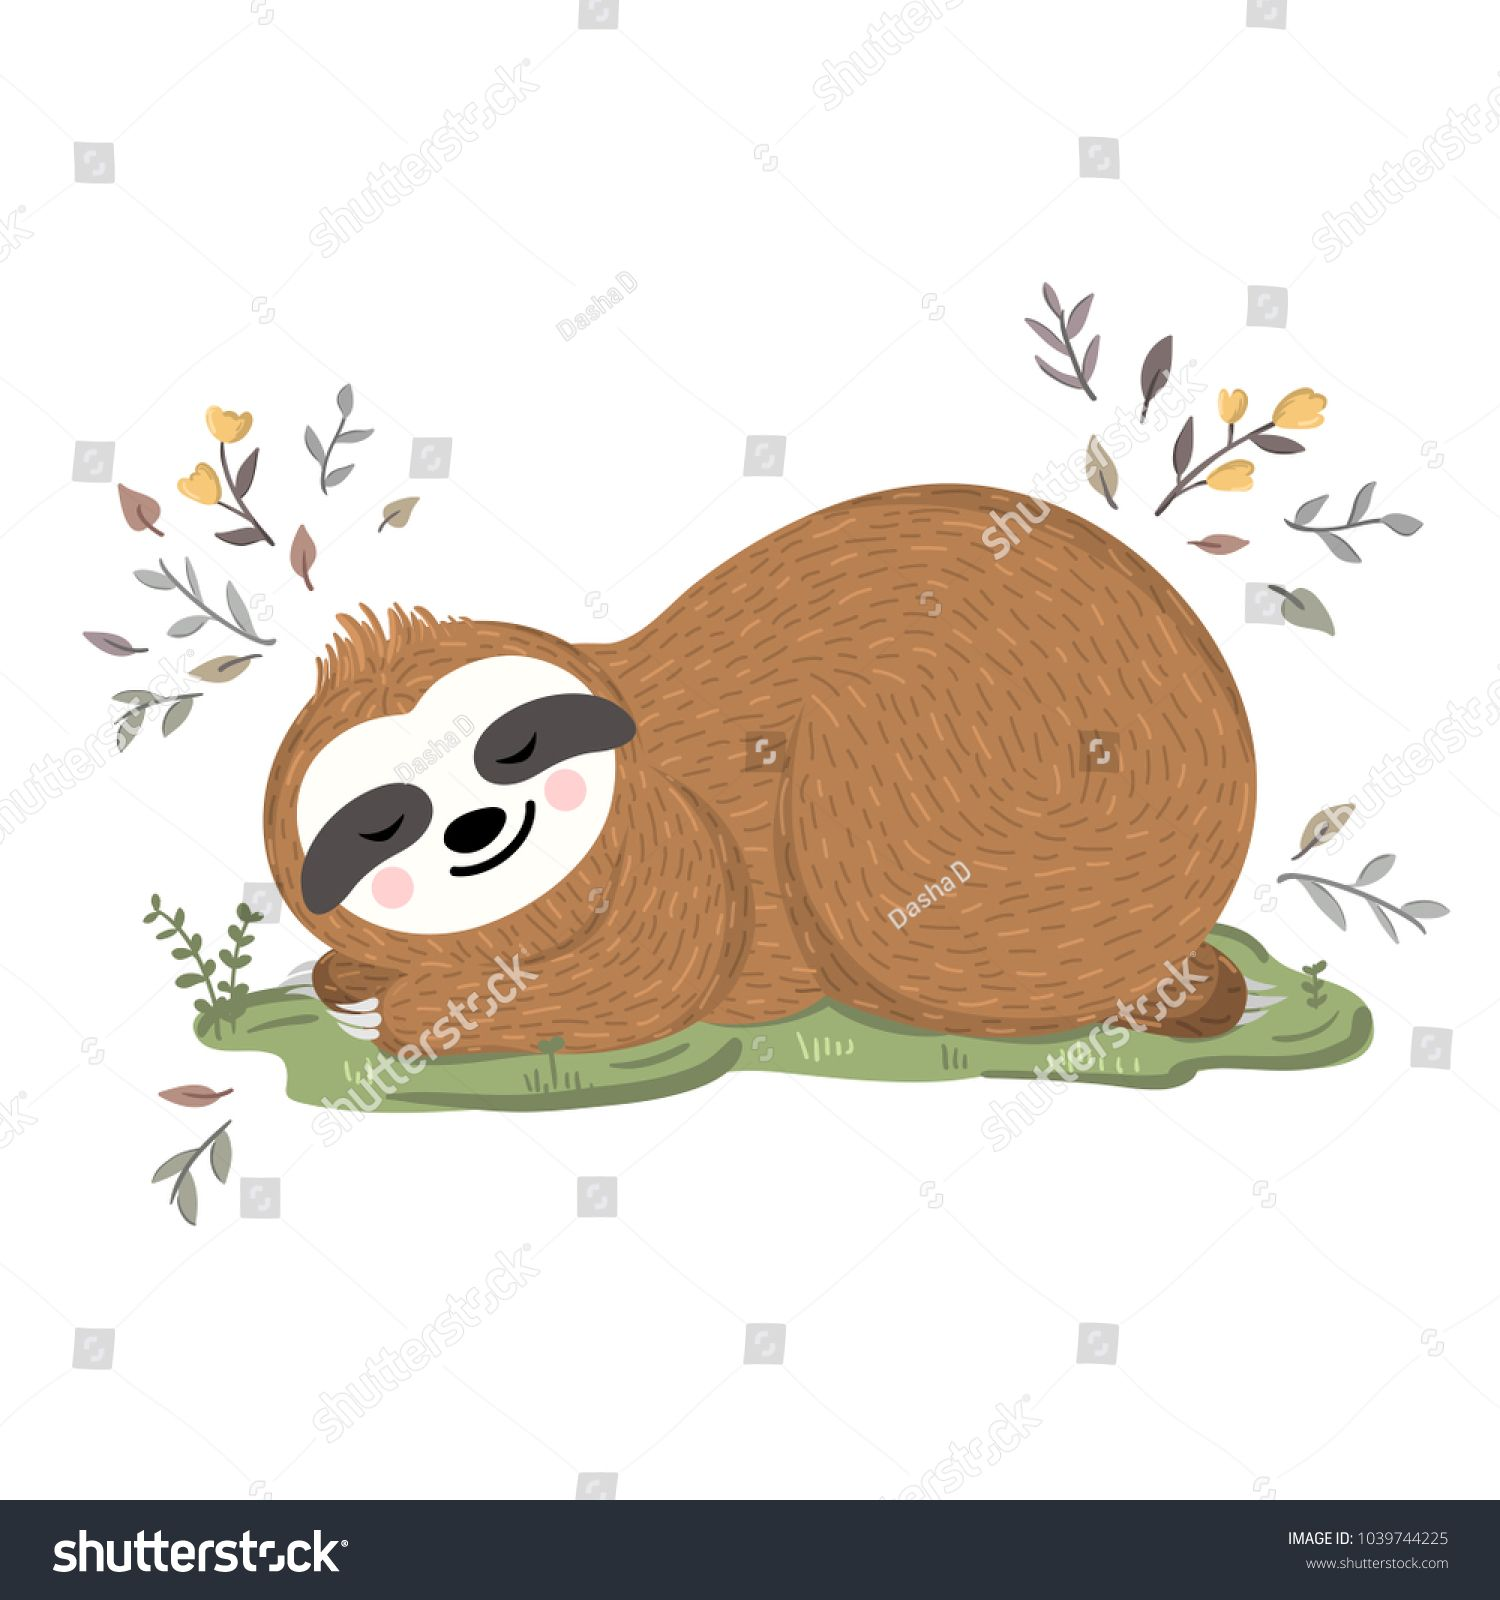 Cute baby sloth sleeping on the grass among flowers and